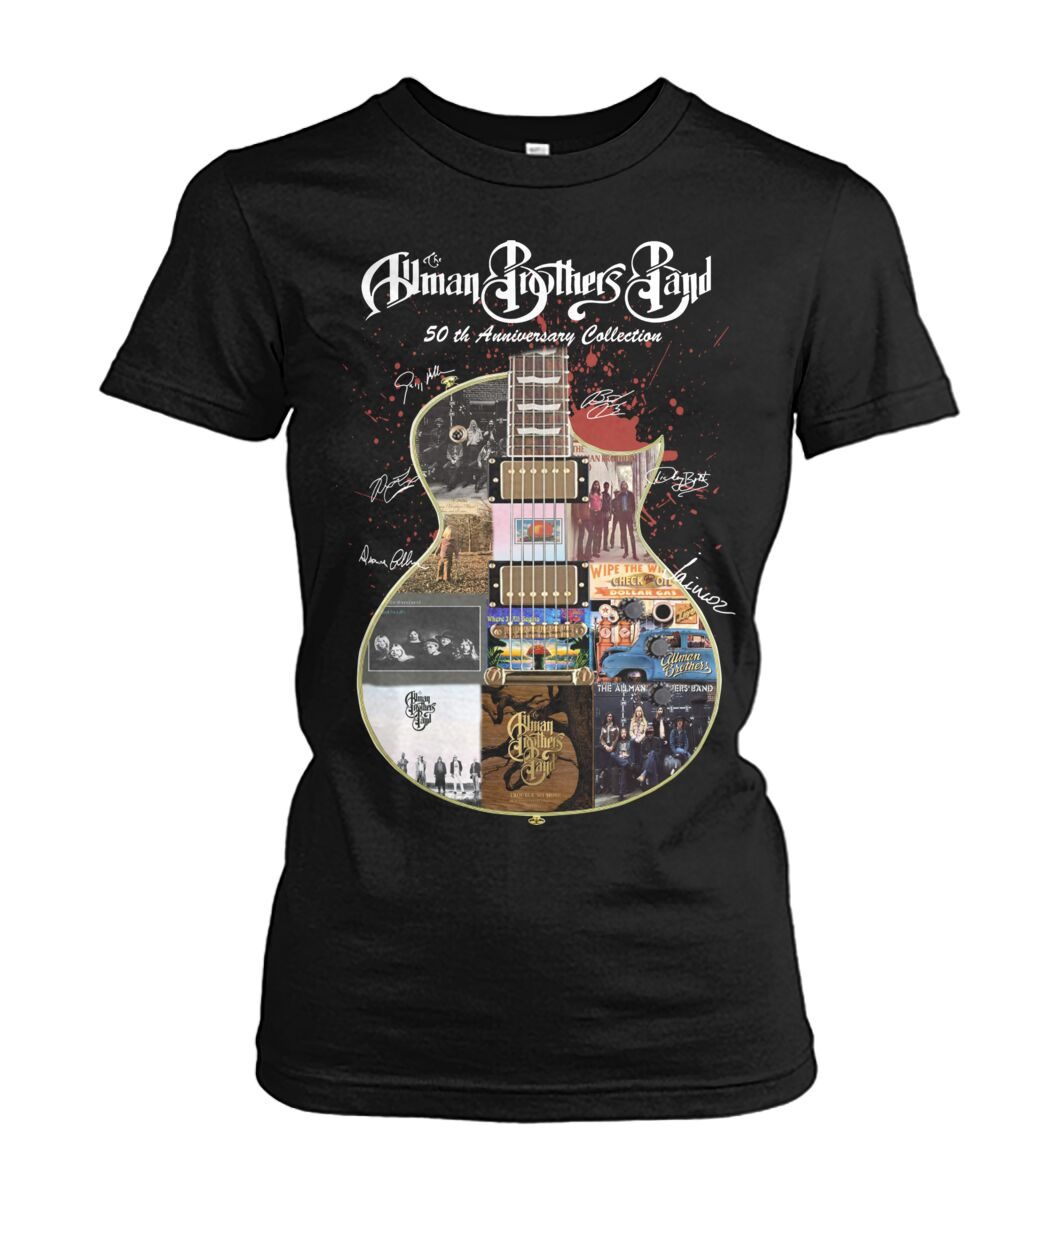 Allman brothers band 50th anniversary collection guitar signature women shirt